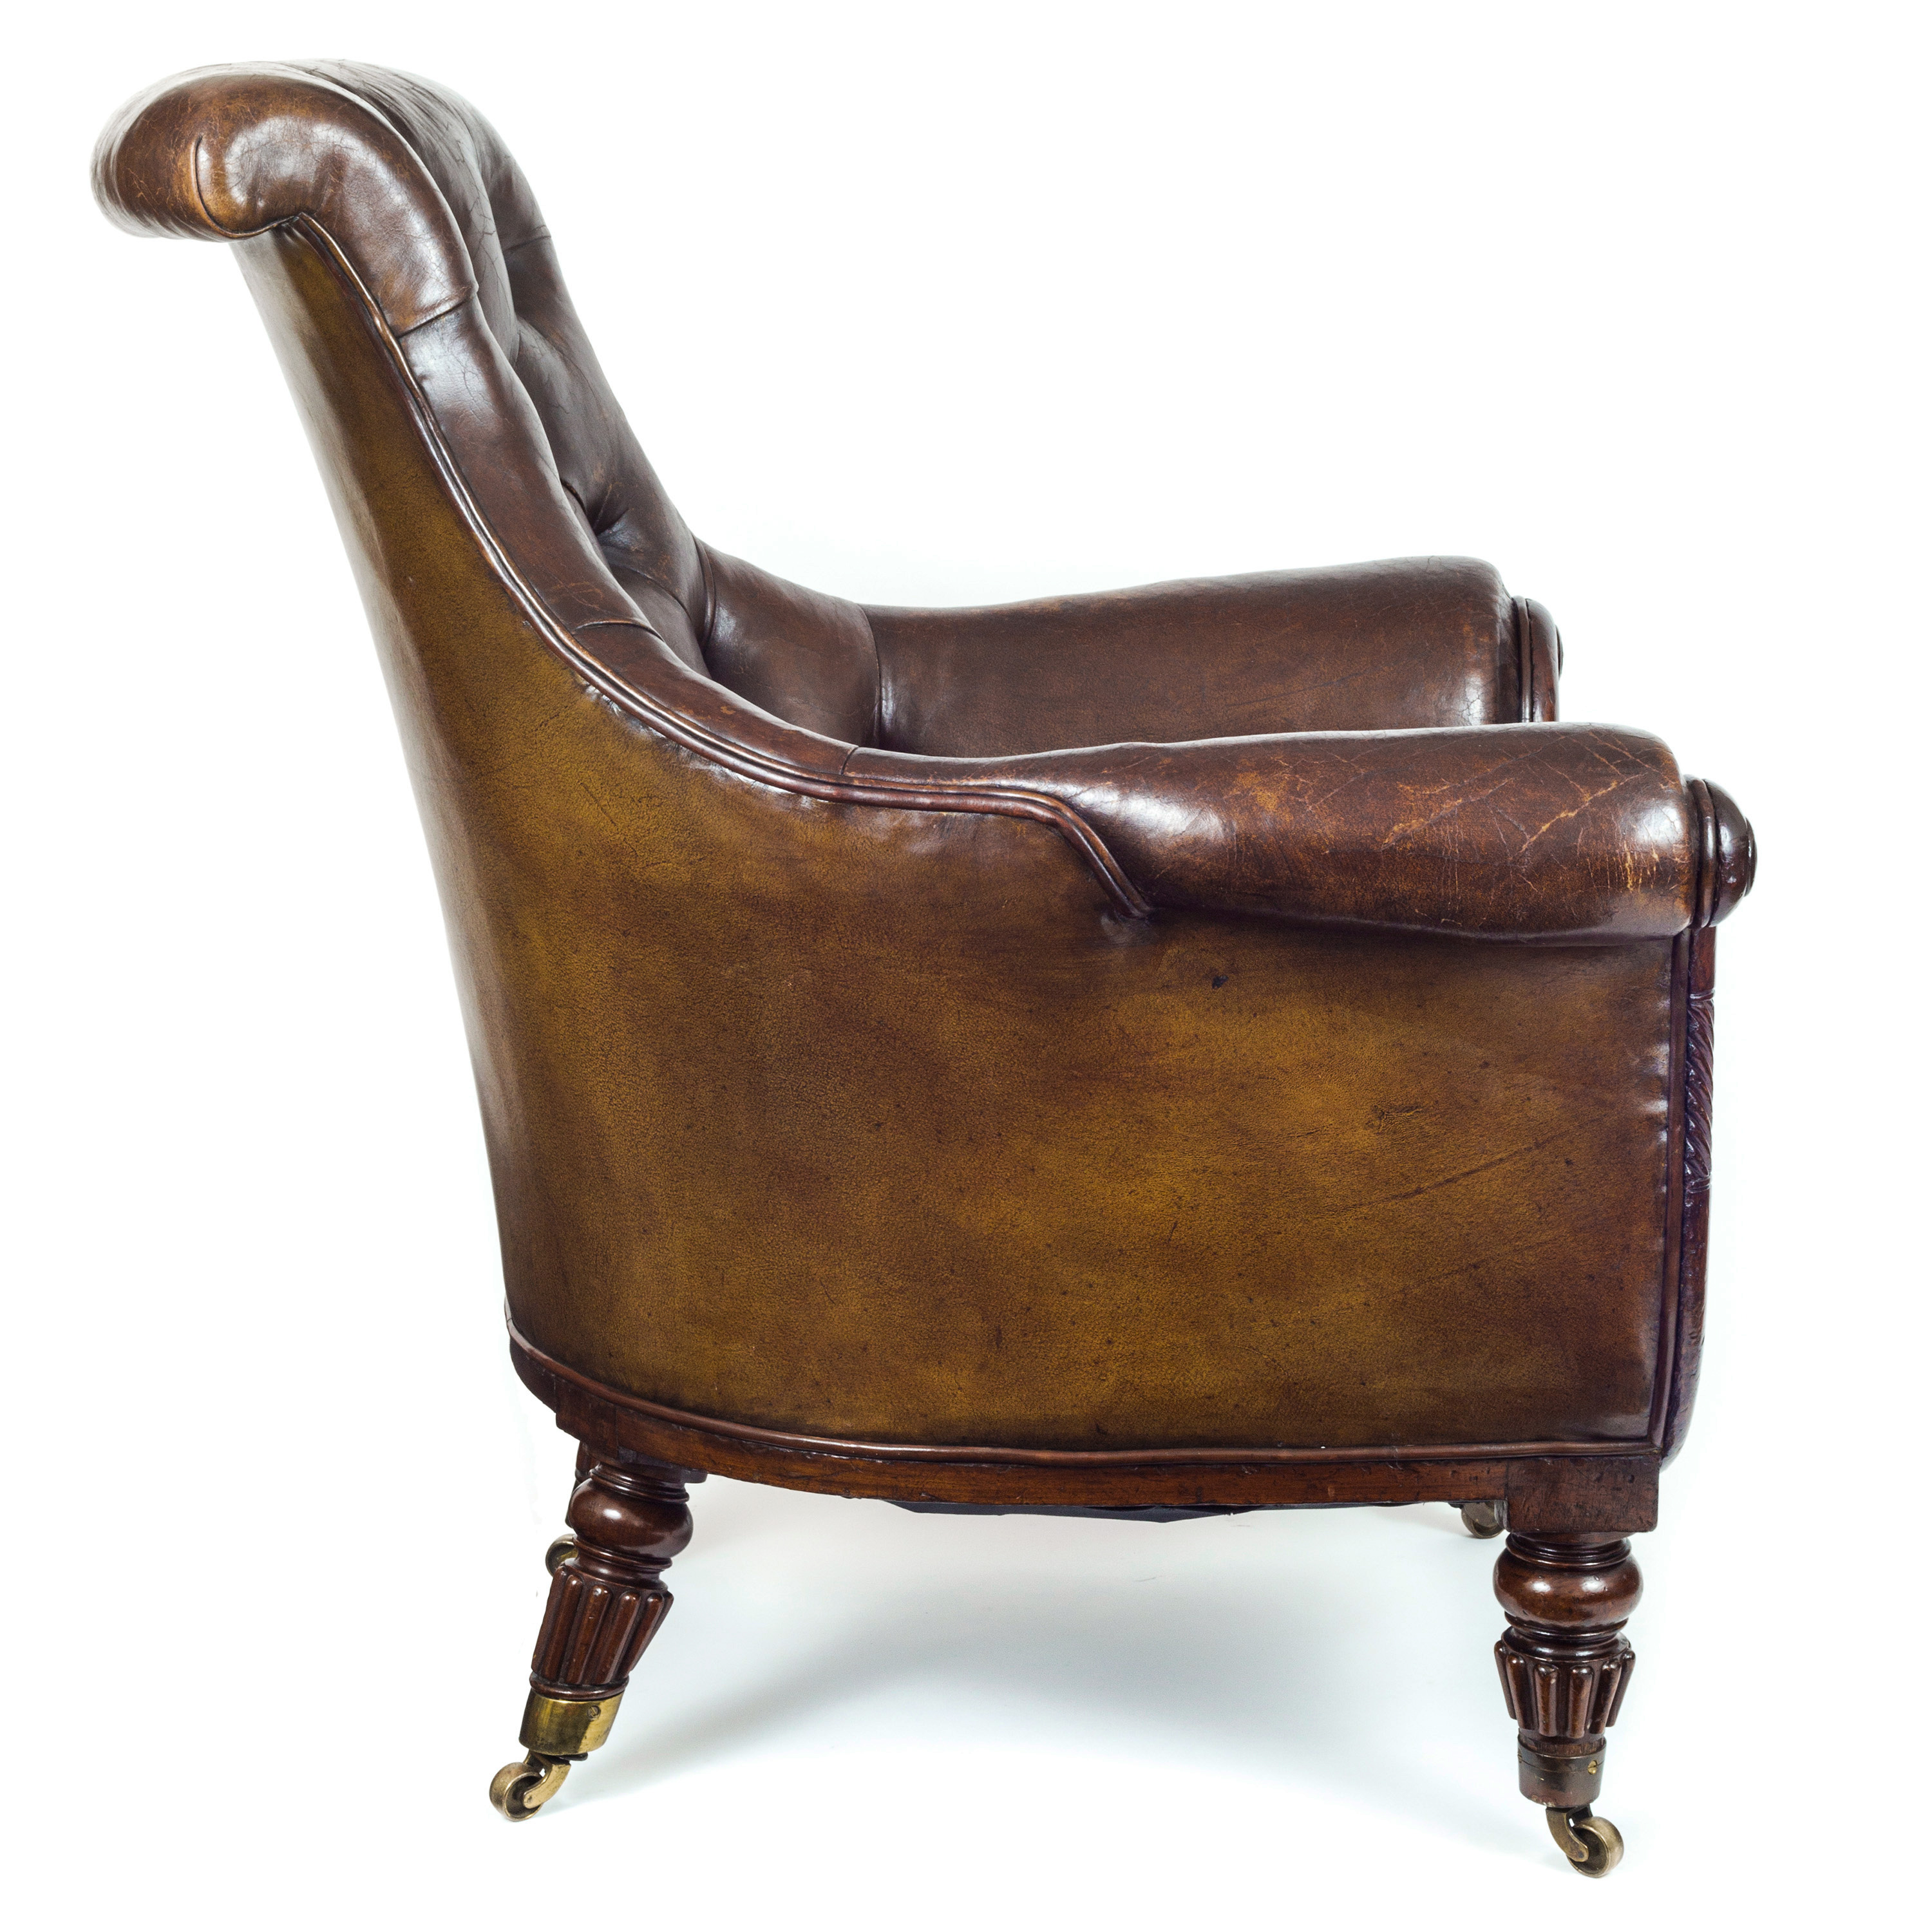 bernhardt london club leather sofa price sectional sofas for small living rooms english regency gillows tufted brown overscale